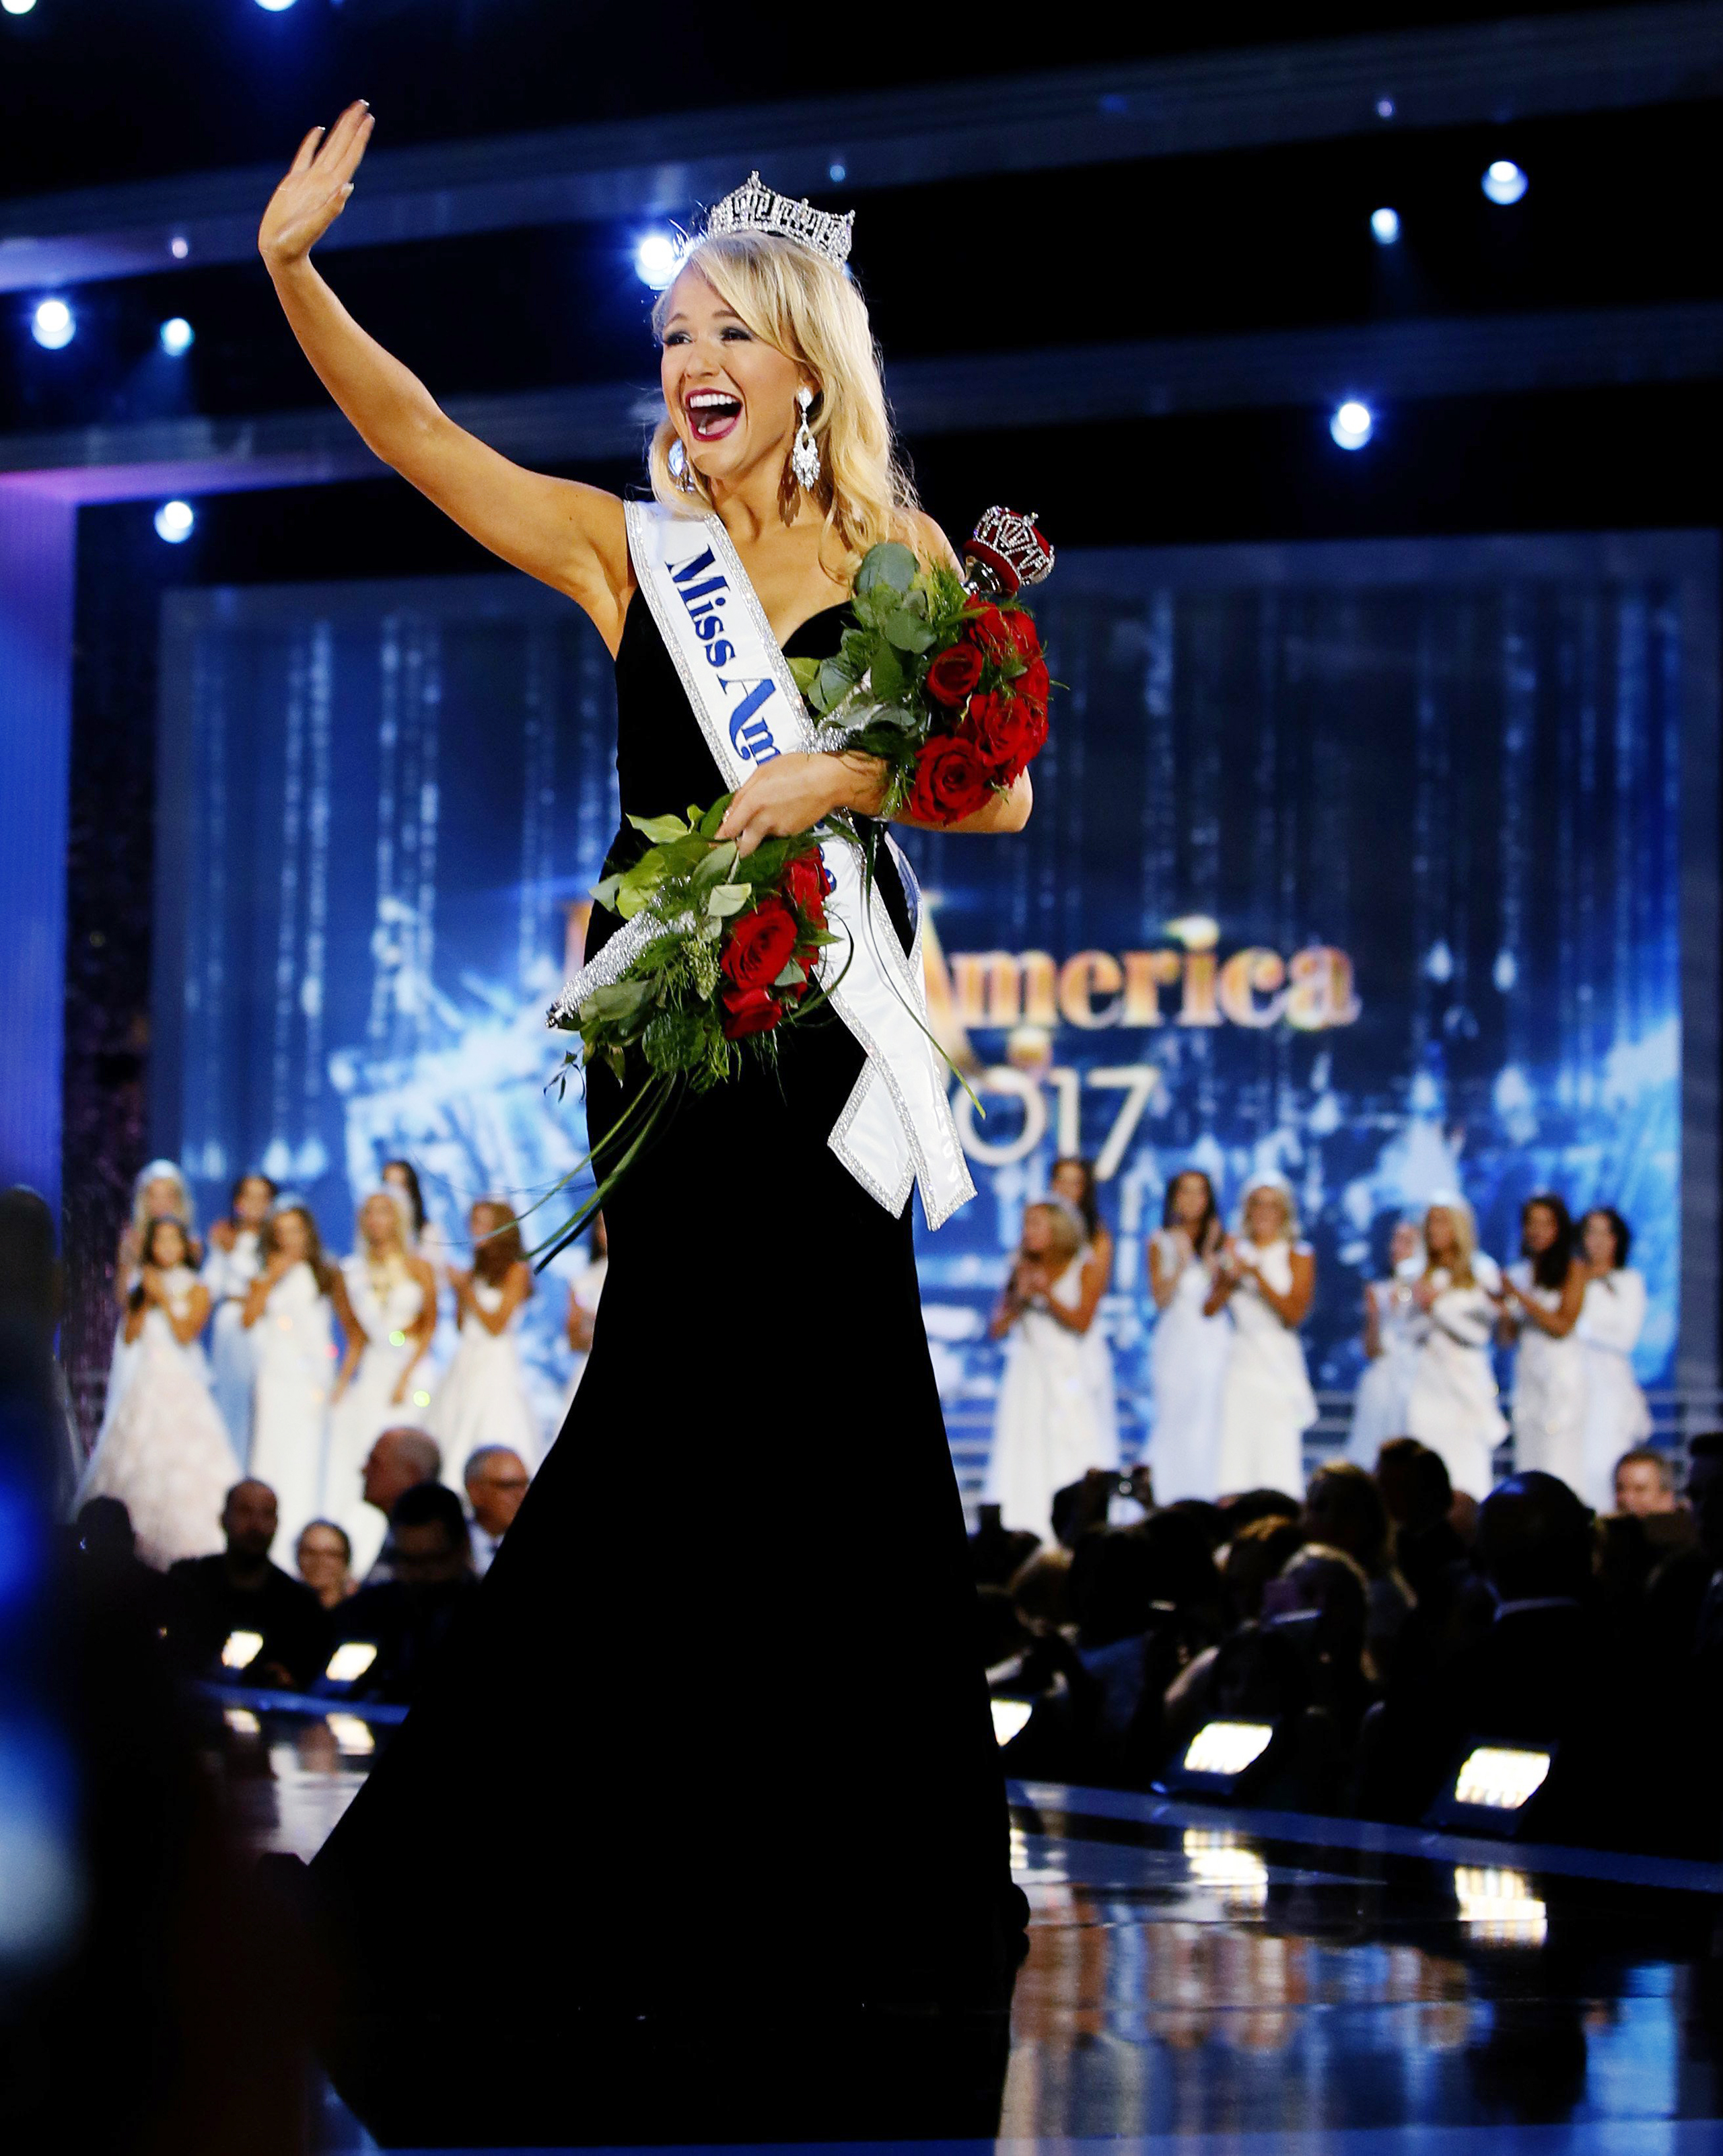 Miss Arkansa, Savvy Shields, waves to crowd after being named new the Miss America 2017 in Atlantic City, N.J., Sept. 11, 2016.